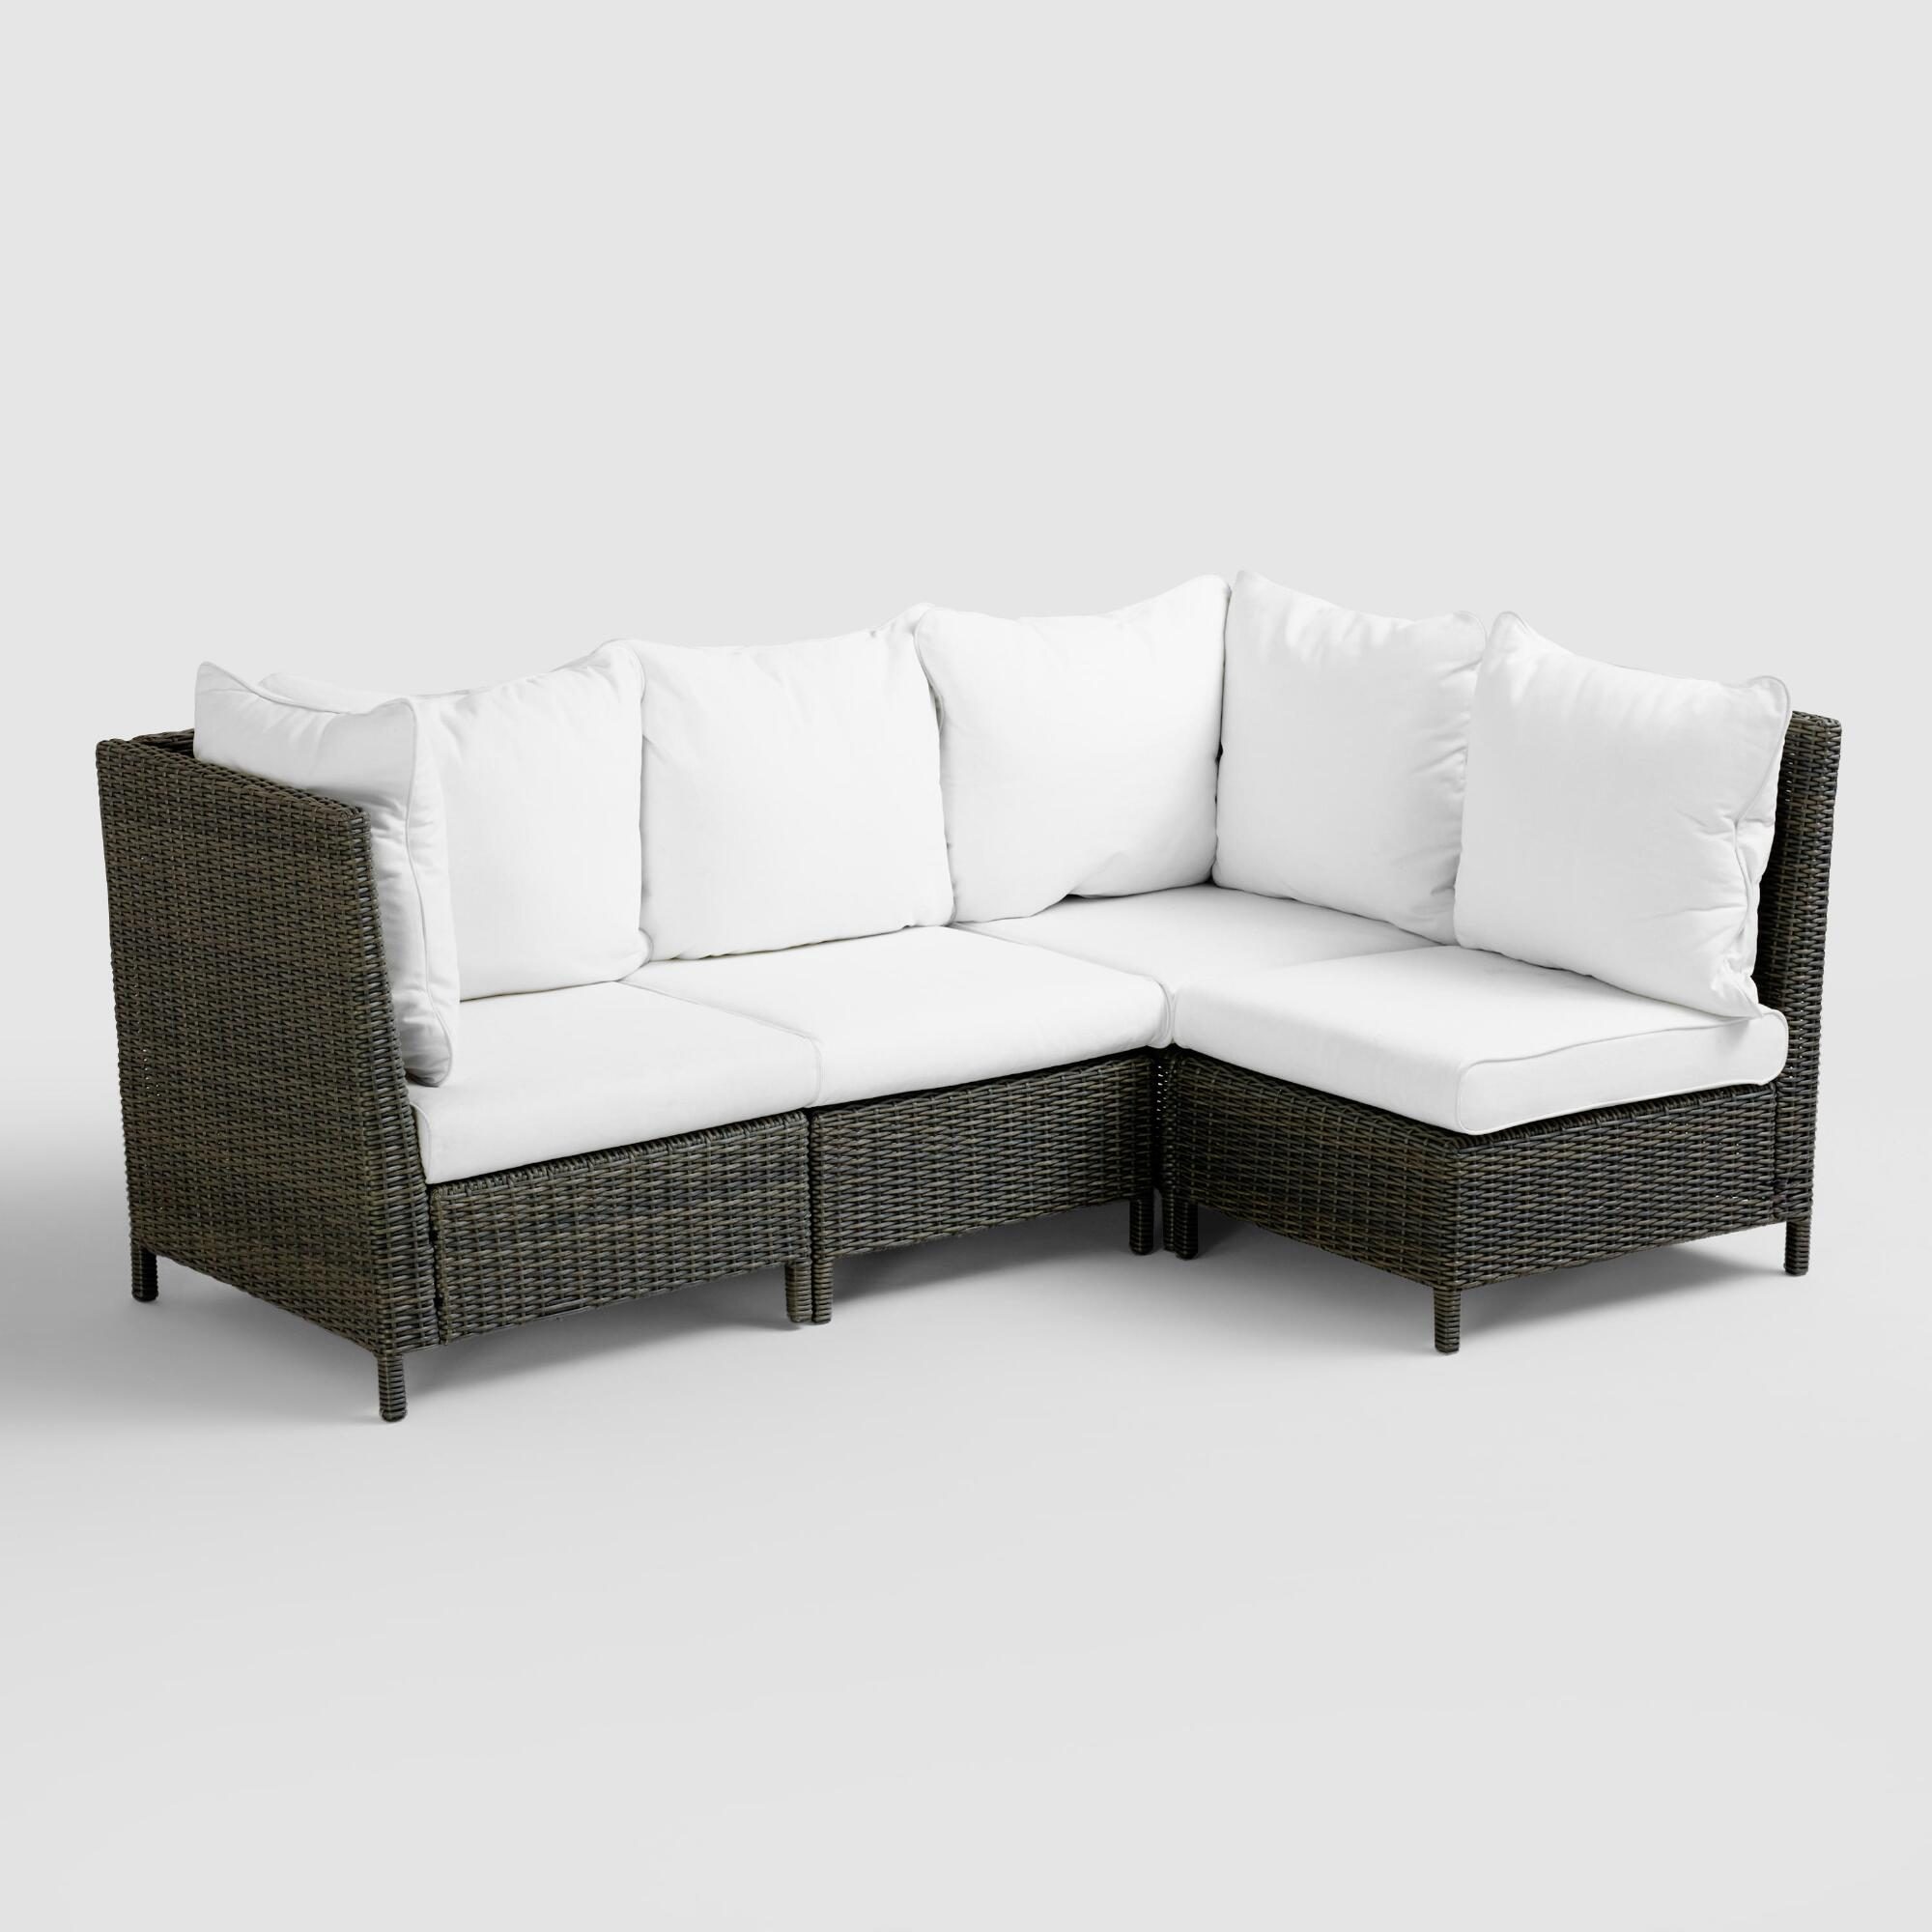 Solano outdoor sectional collection world market for Sectional sofas for outdoor